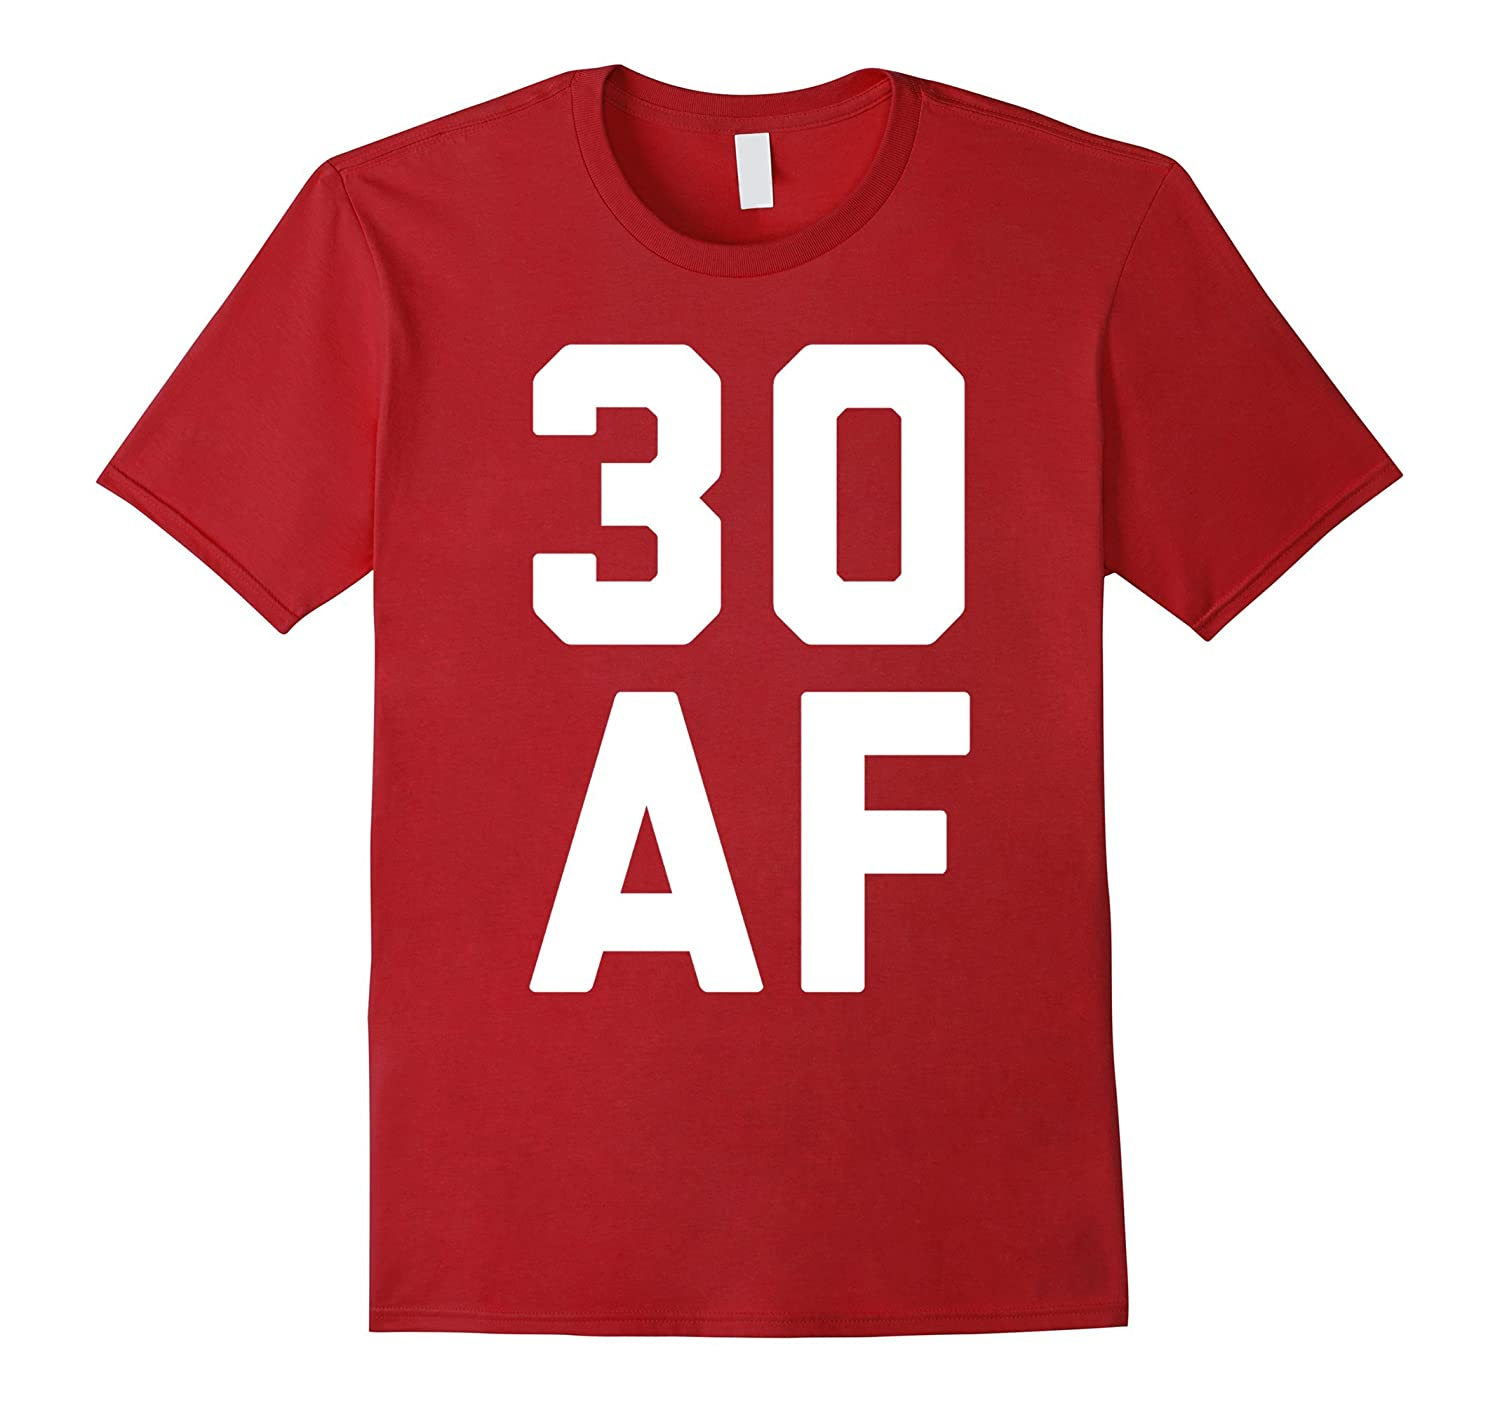 30 AF T-Shirt - 30th Birthday Shirt Men Women Thirty Gift-FL